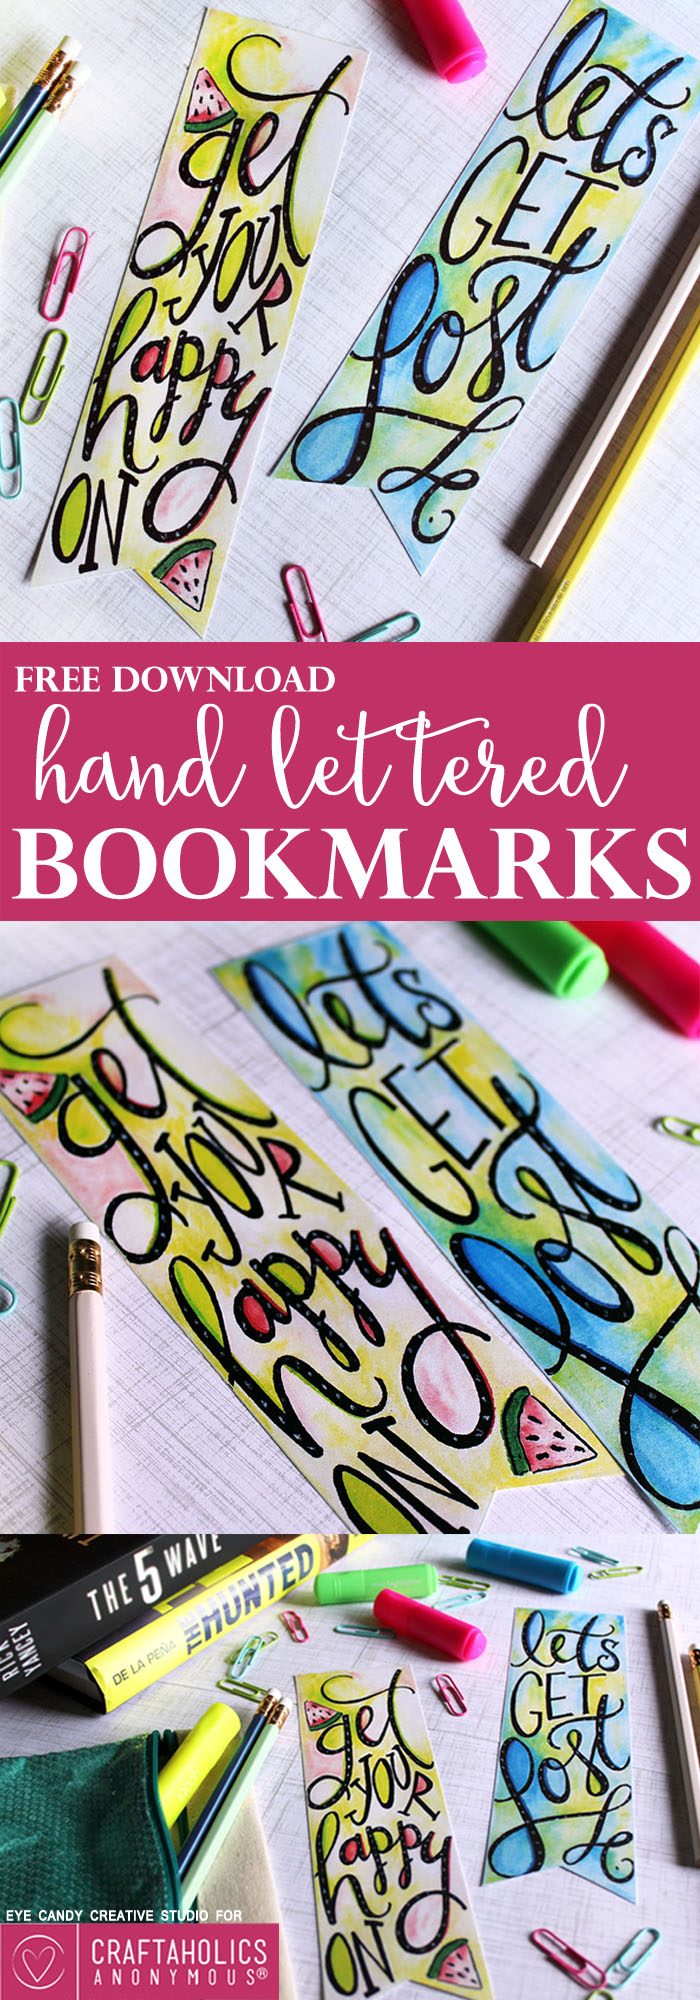 Free Printable Hand Lettered Bookmarks from craftaholicsanonymous.net